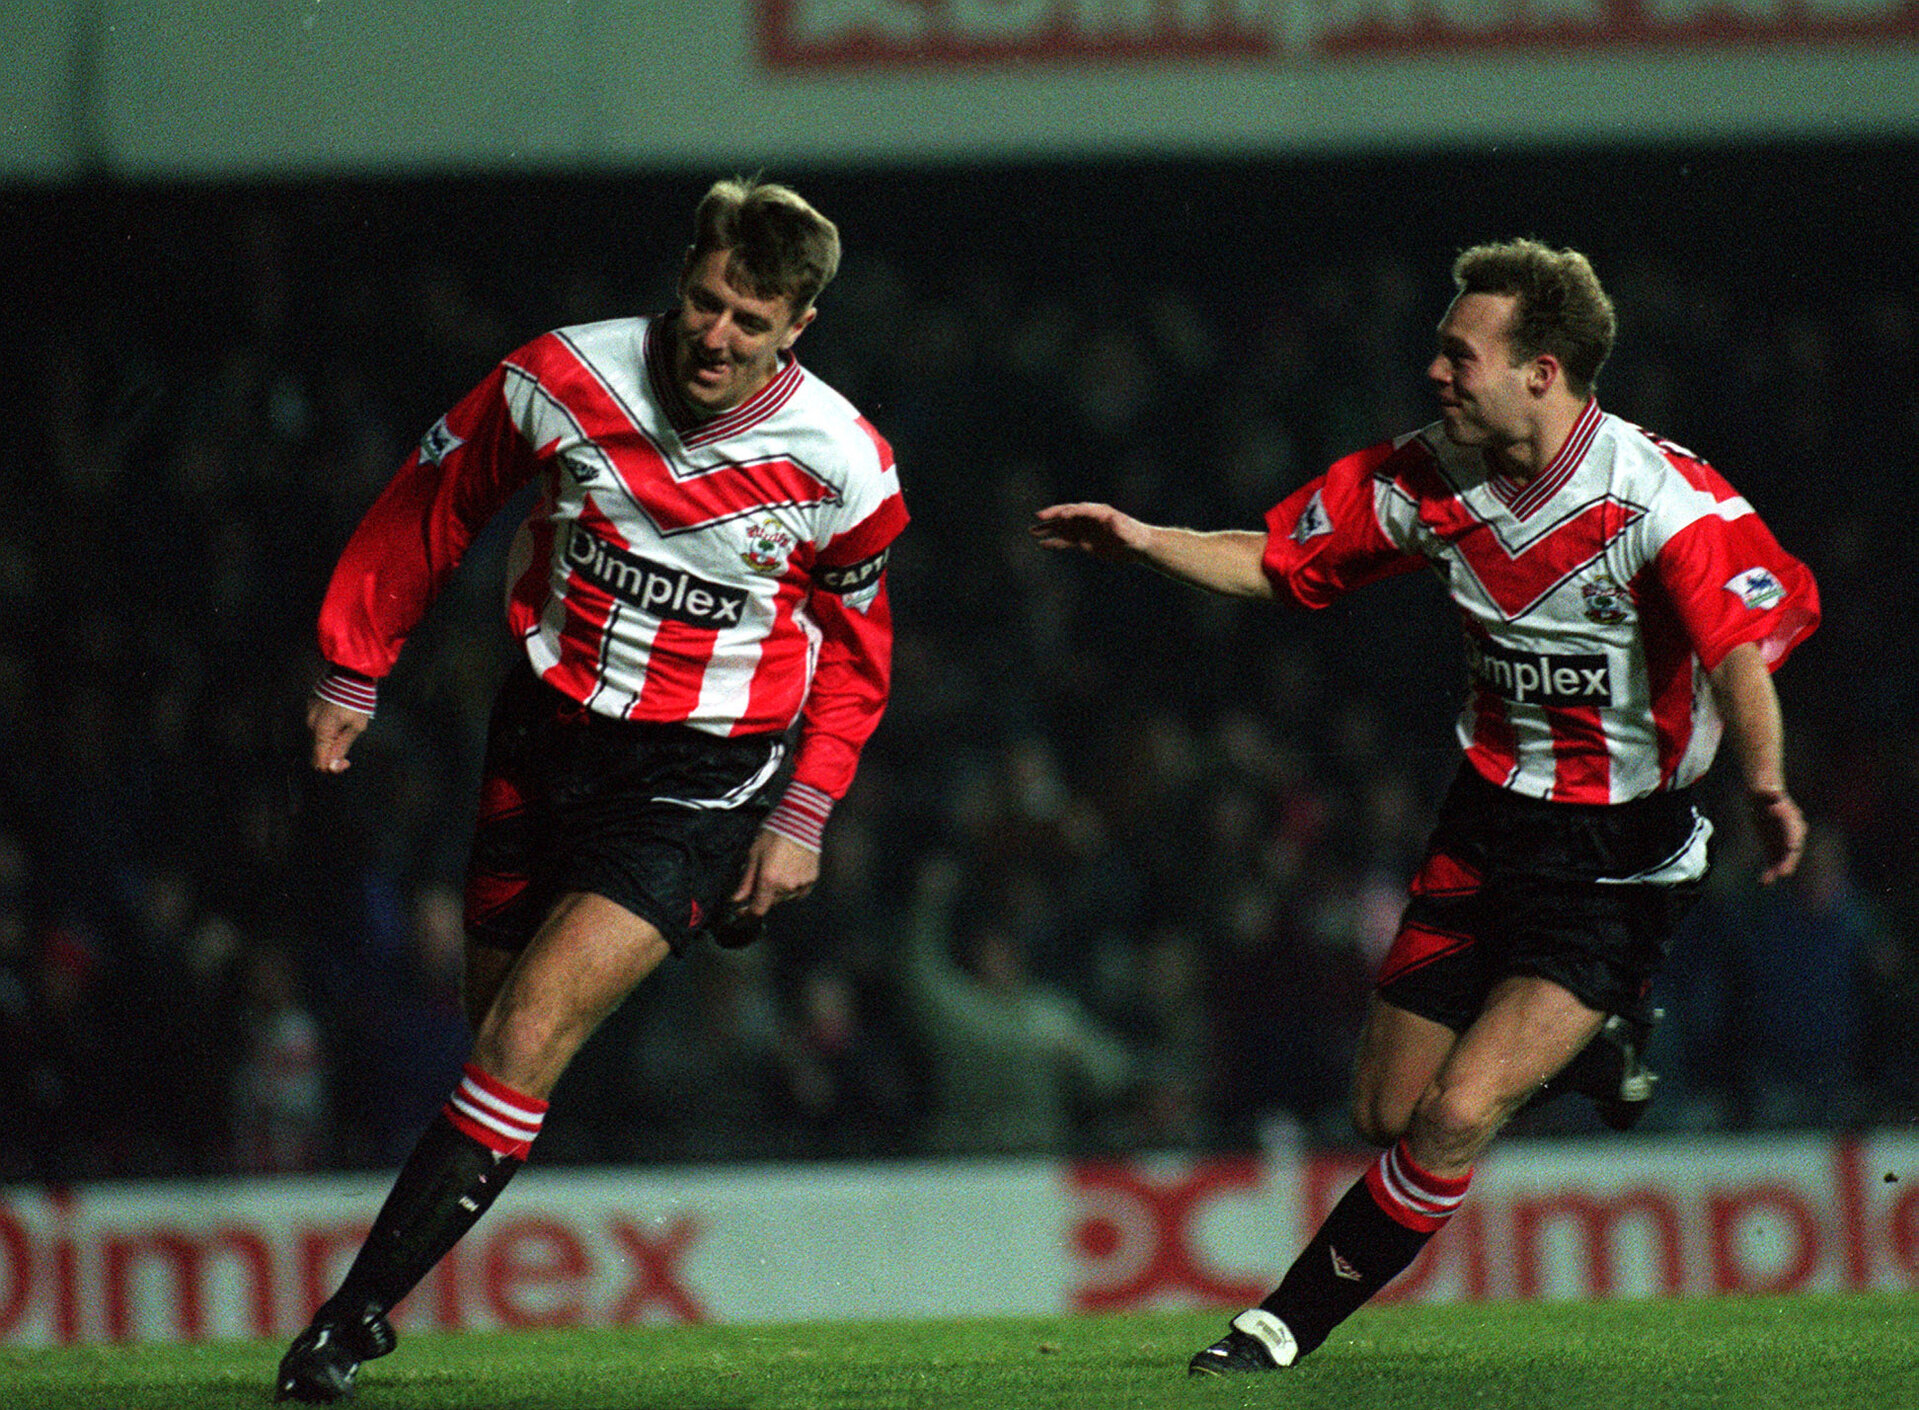 Southampton v Liverpool 14/2/94 F.A Premier League  Pic : Action Images   Matthew Le Tissier celebrates scoring the 1st goal from the penalty spot